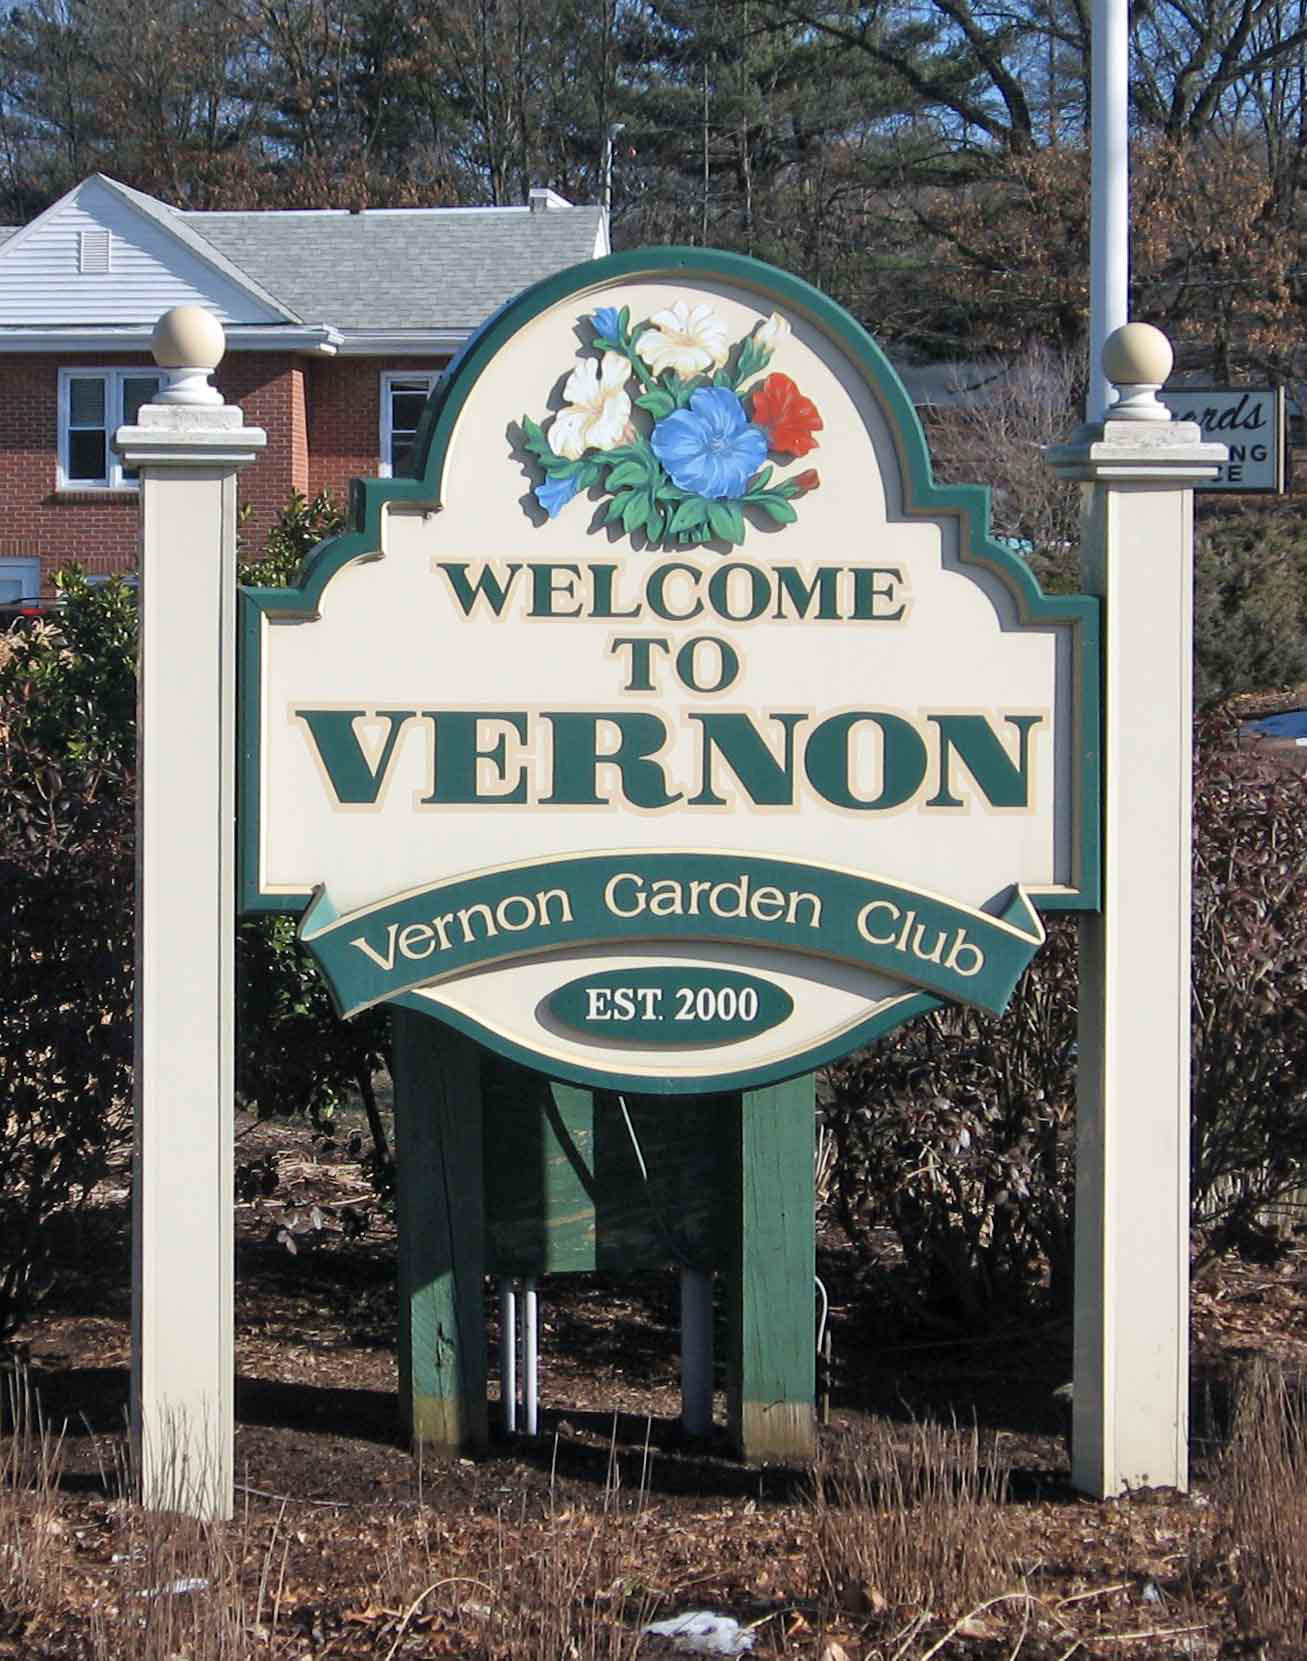 Vernon welcome garden and sign; maintained by the Vernon Garden Club.